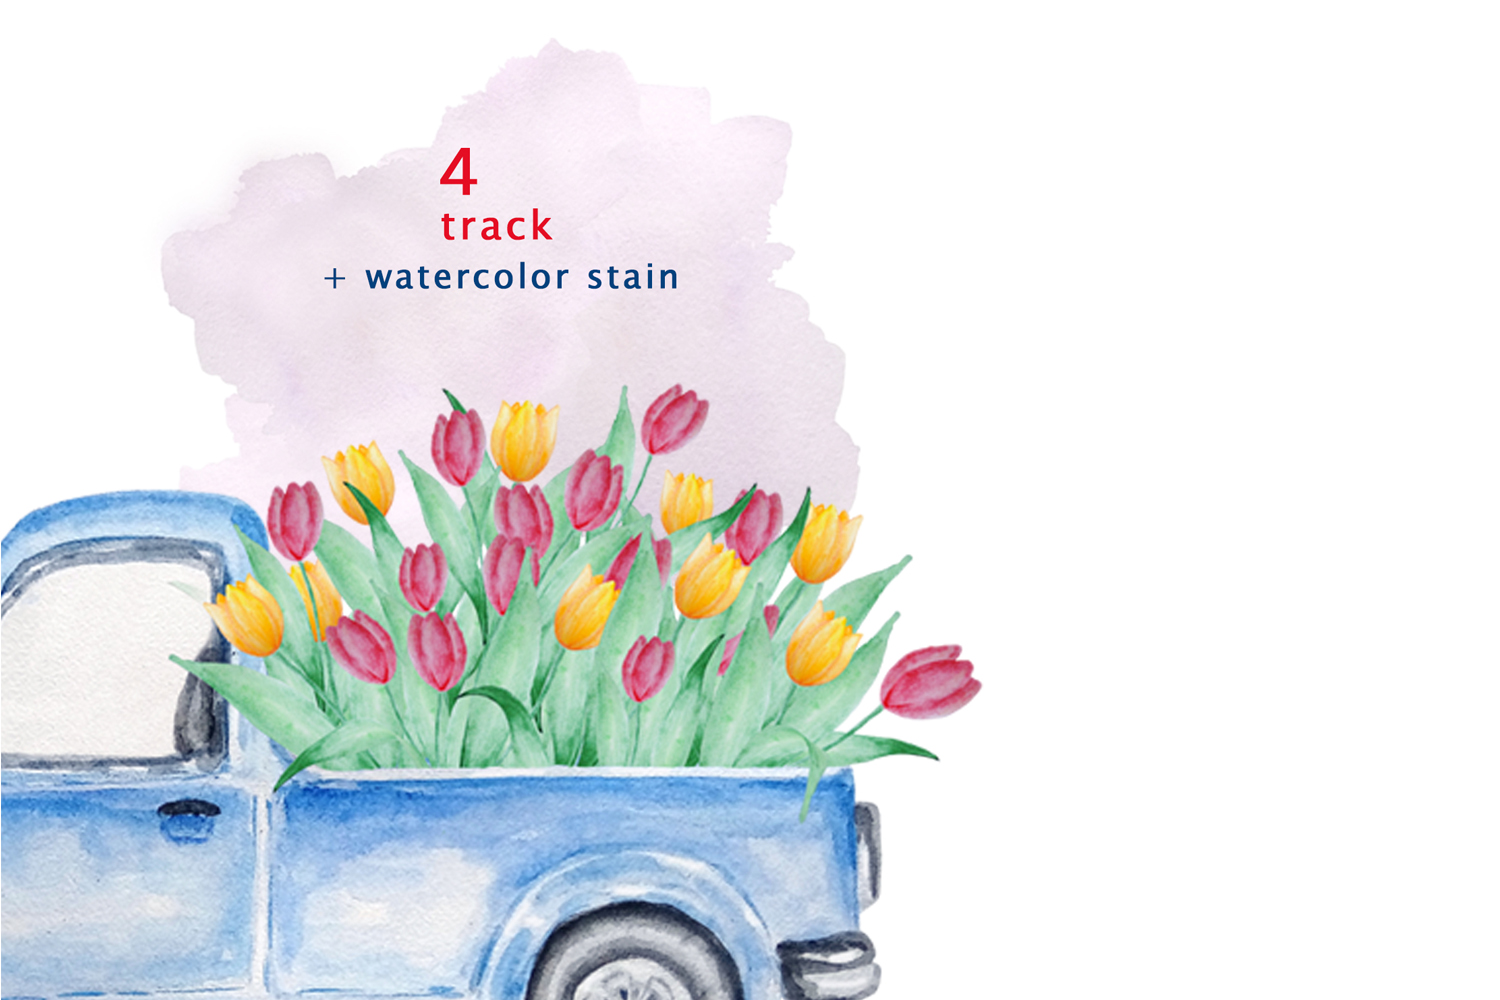 Watercolor Blue Track Clipart example image 6